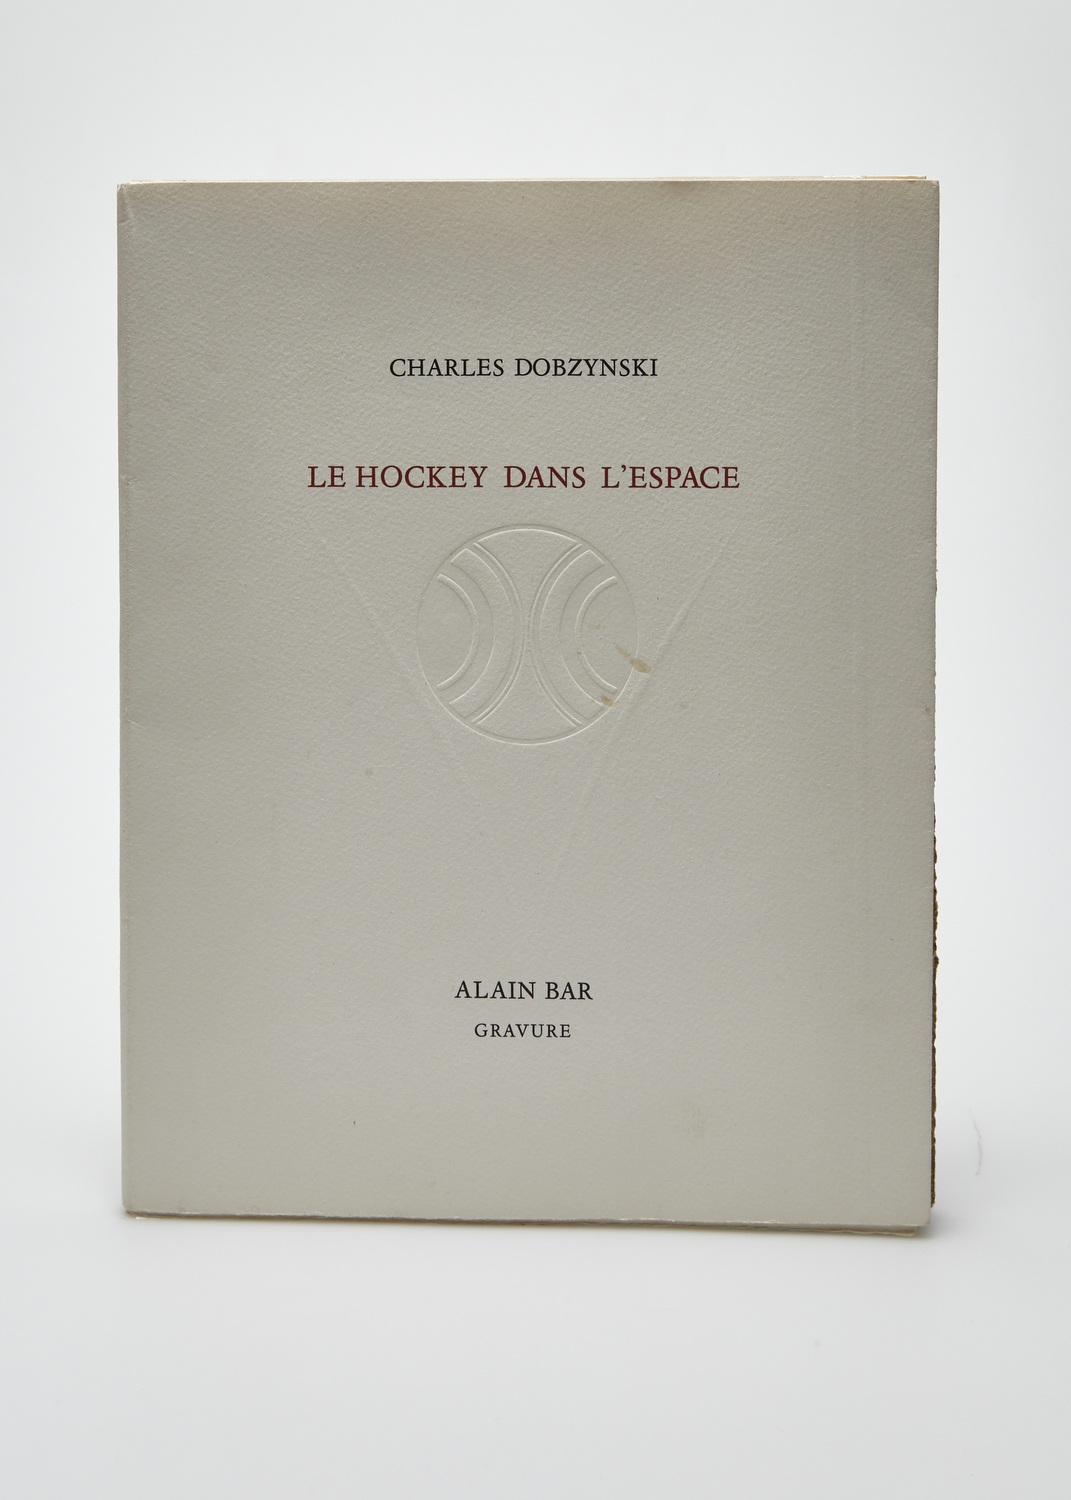 Le Hockey Dans l'Espace    Text by Charles Dobzynski and engraving by Alain Bar  1982 | 25 x 32 cm | engraving and typography | 25 prints | editor Le Verbe et l'Empreinte